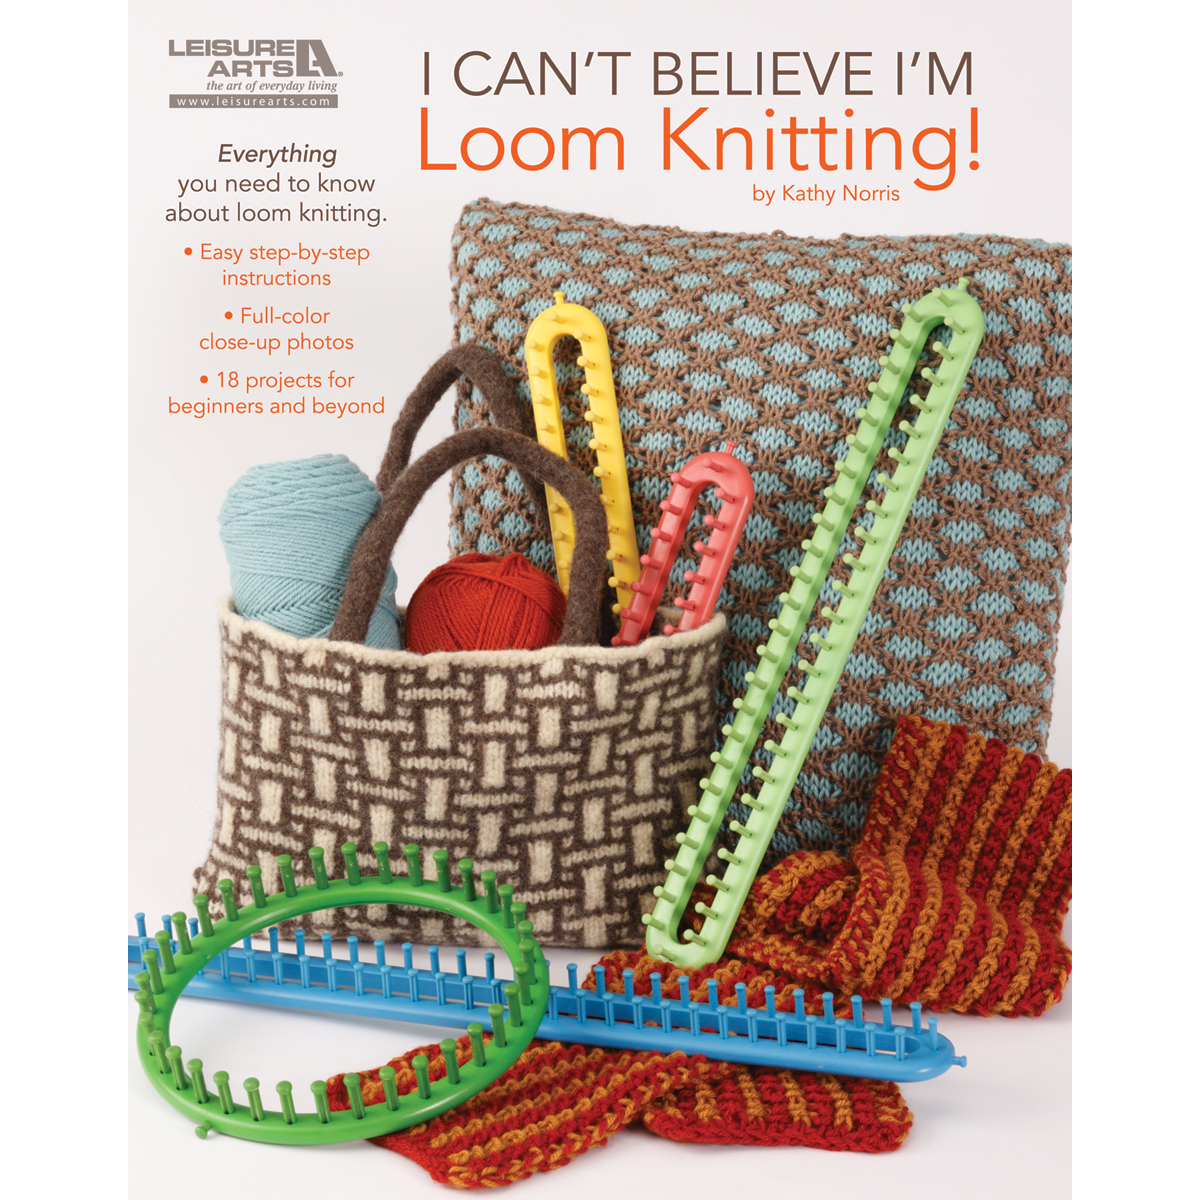 Leisure Arts Can't Believe I'm Loom Knitting Book